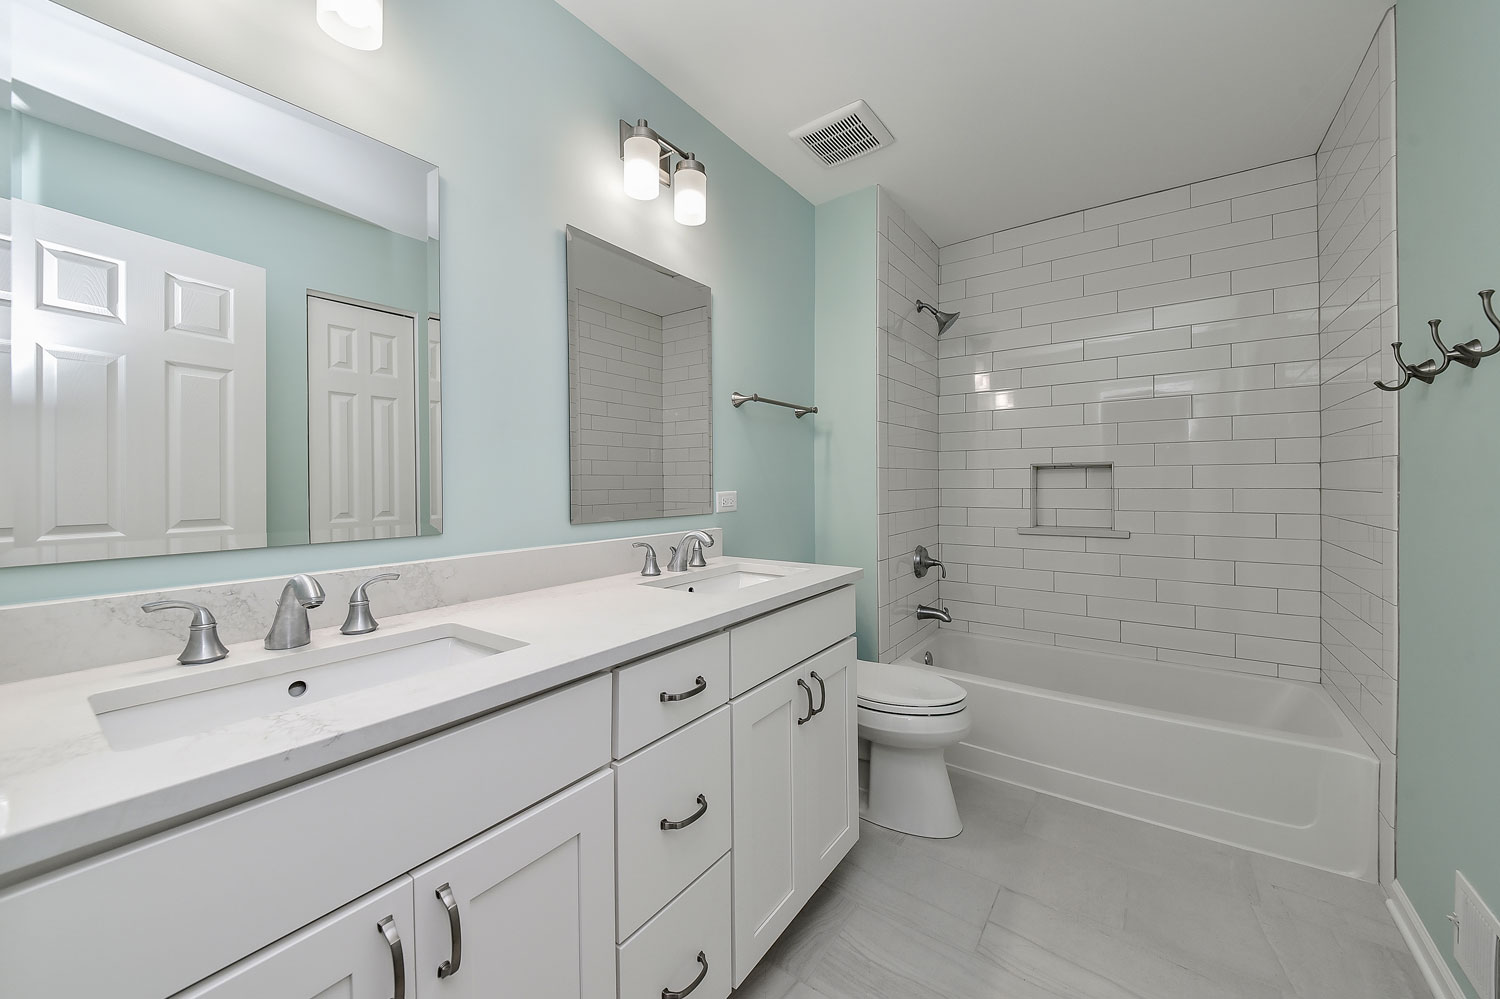 Pete mary 39 s hall bathroom remodel pictures home Bathroom remodeling services